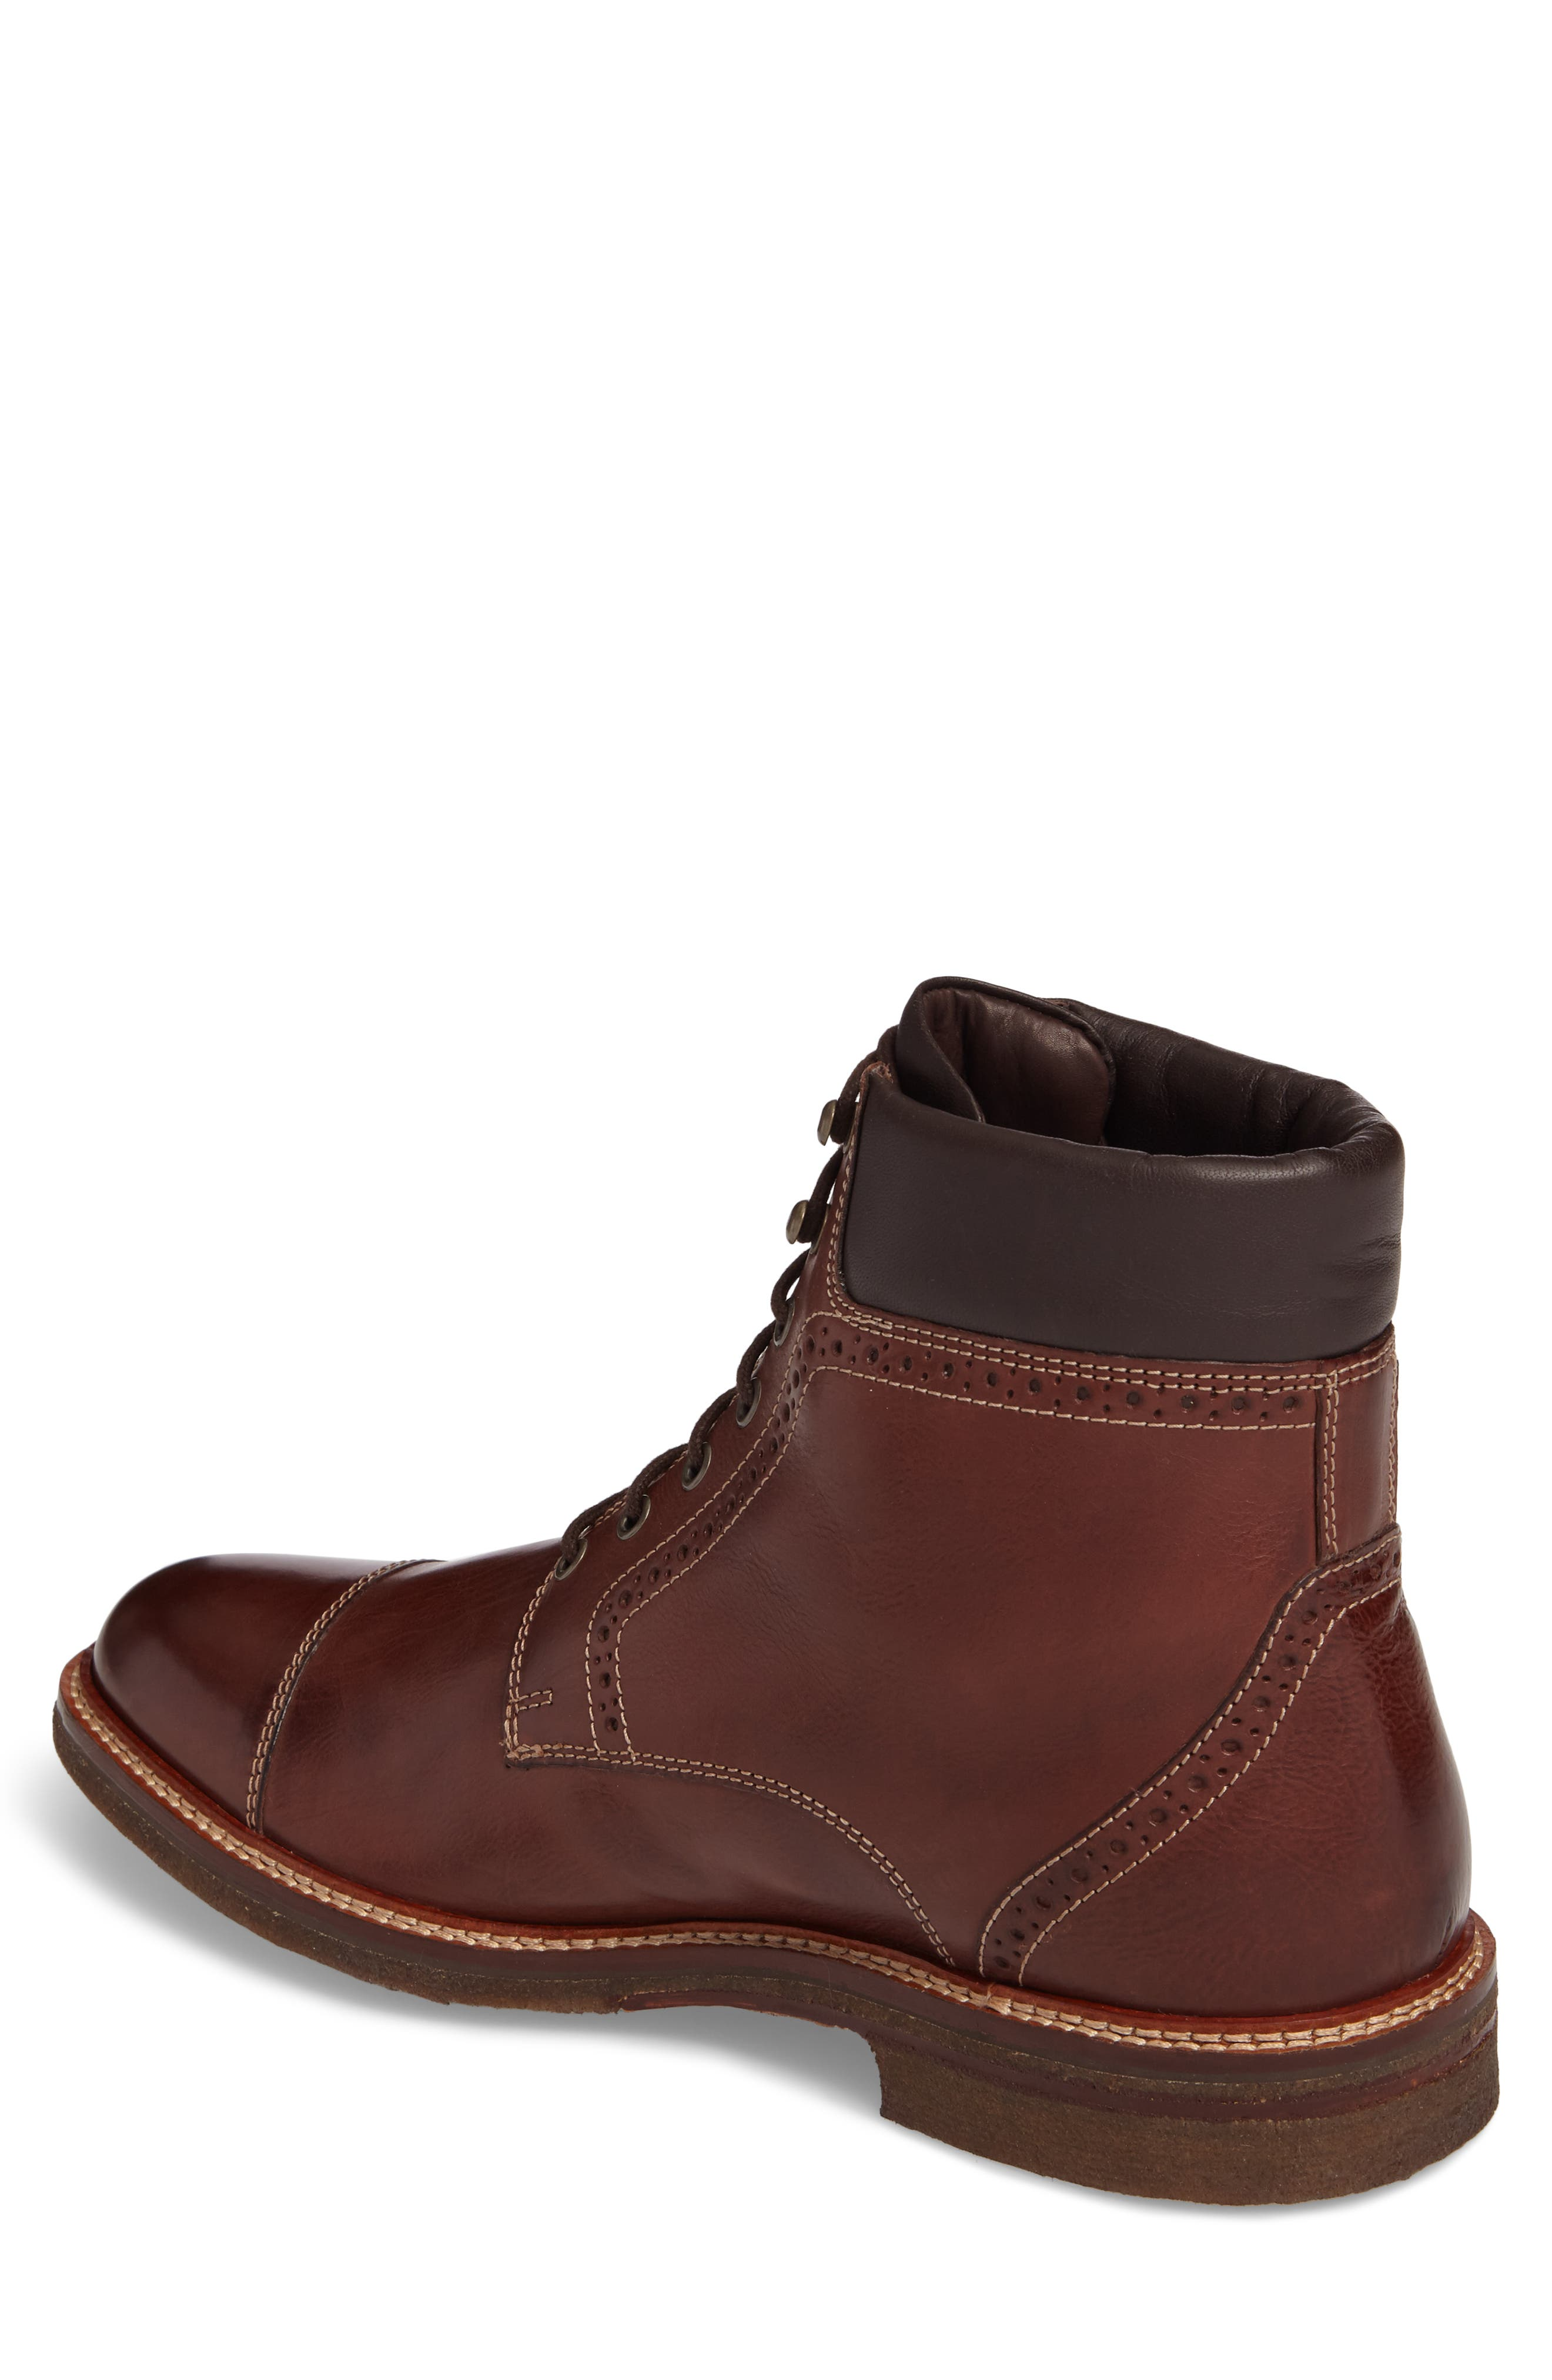 Forrester Cap Toe Boot,                             Alternate thumbnail 2, color,                             Mahogany Leather